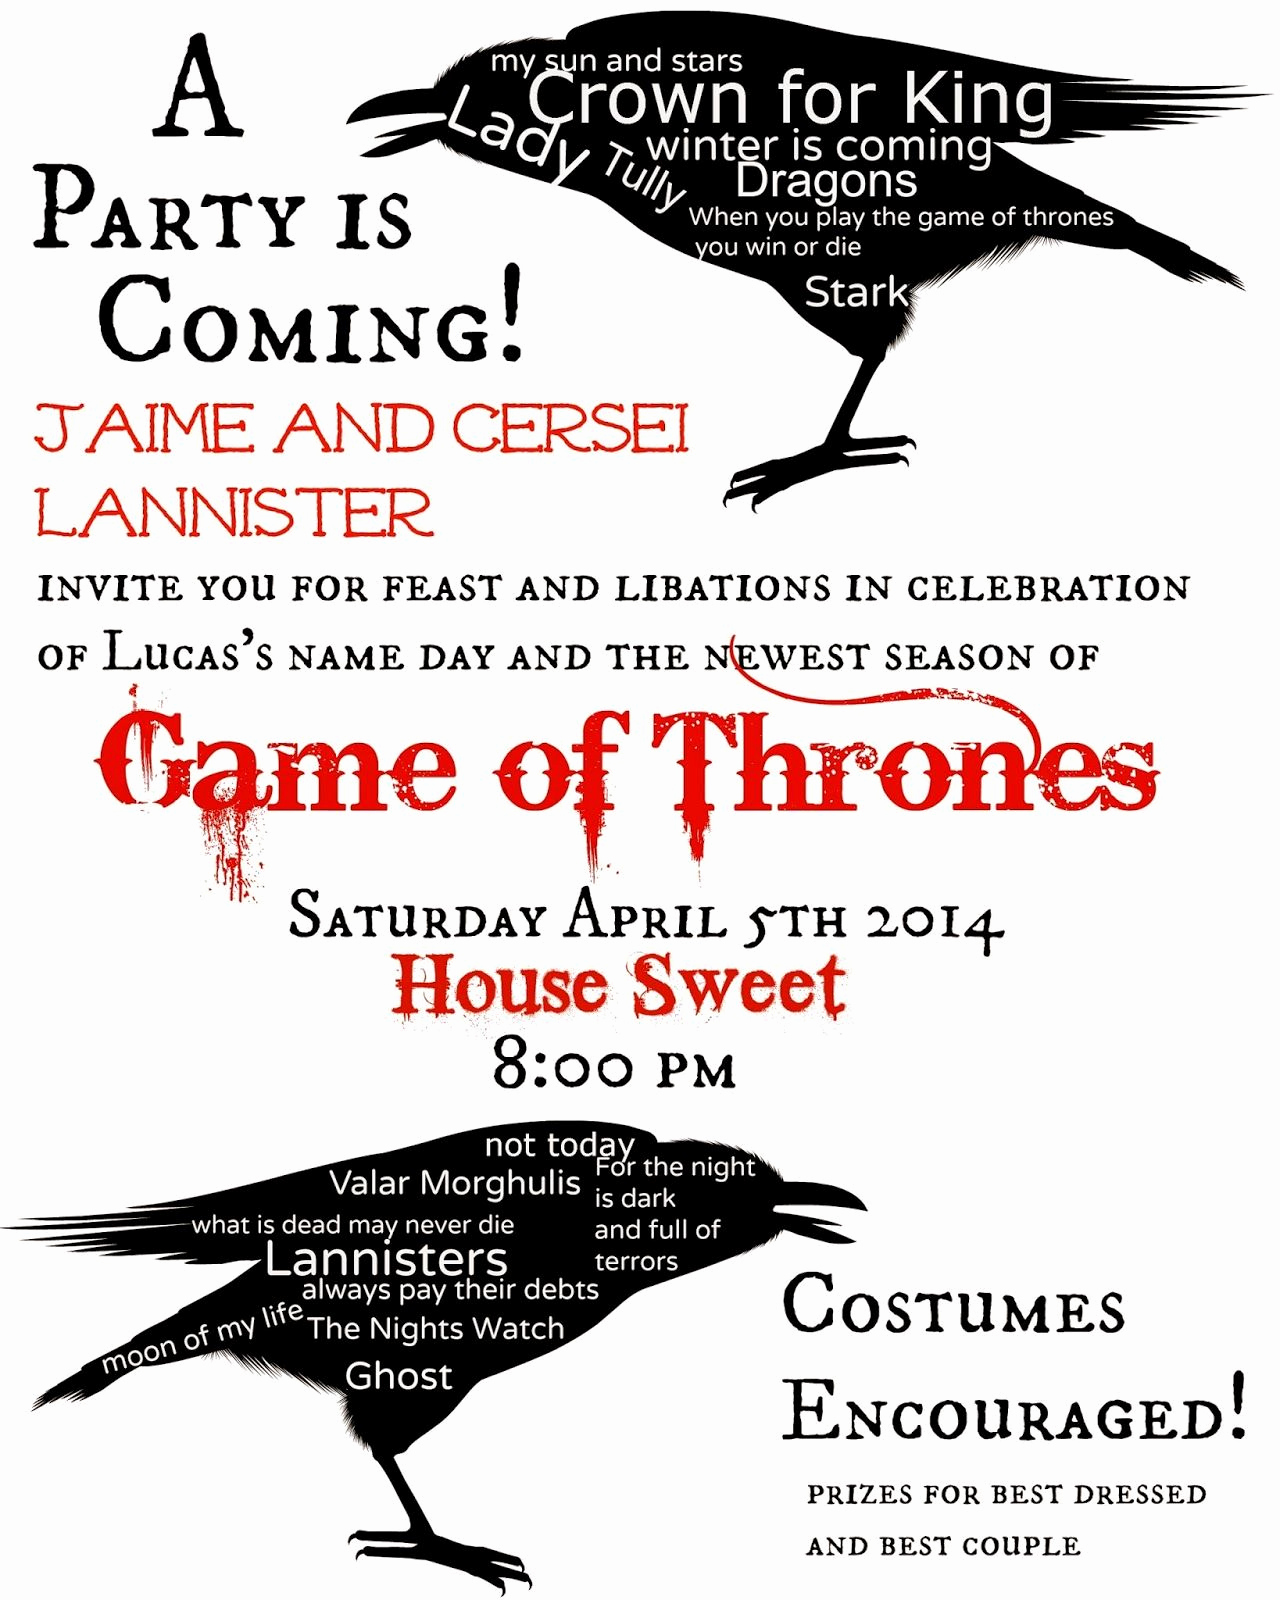 Game Of Thrones Party Invitation Luxury Game Of Thrones themed Party Invitation